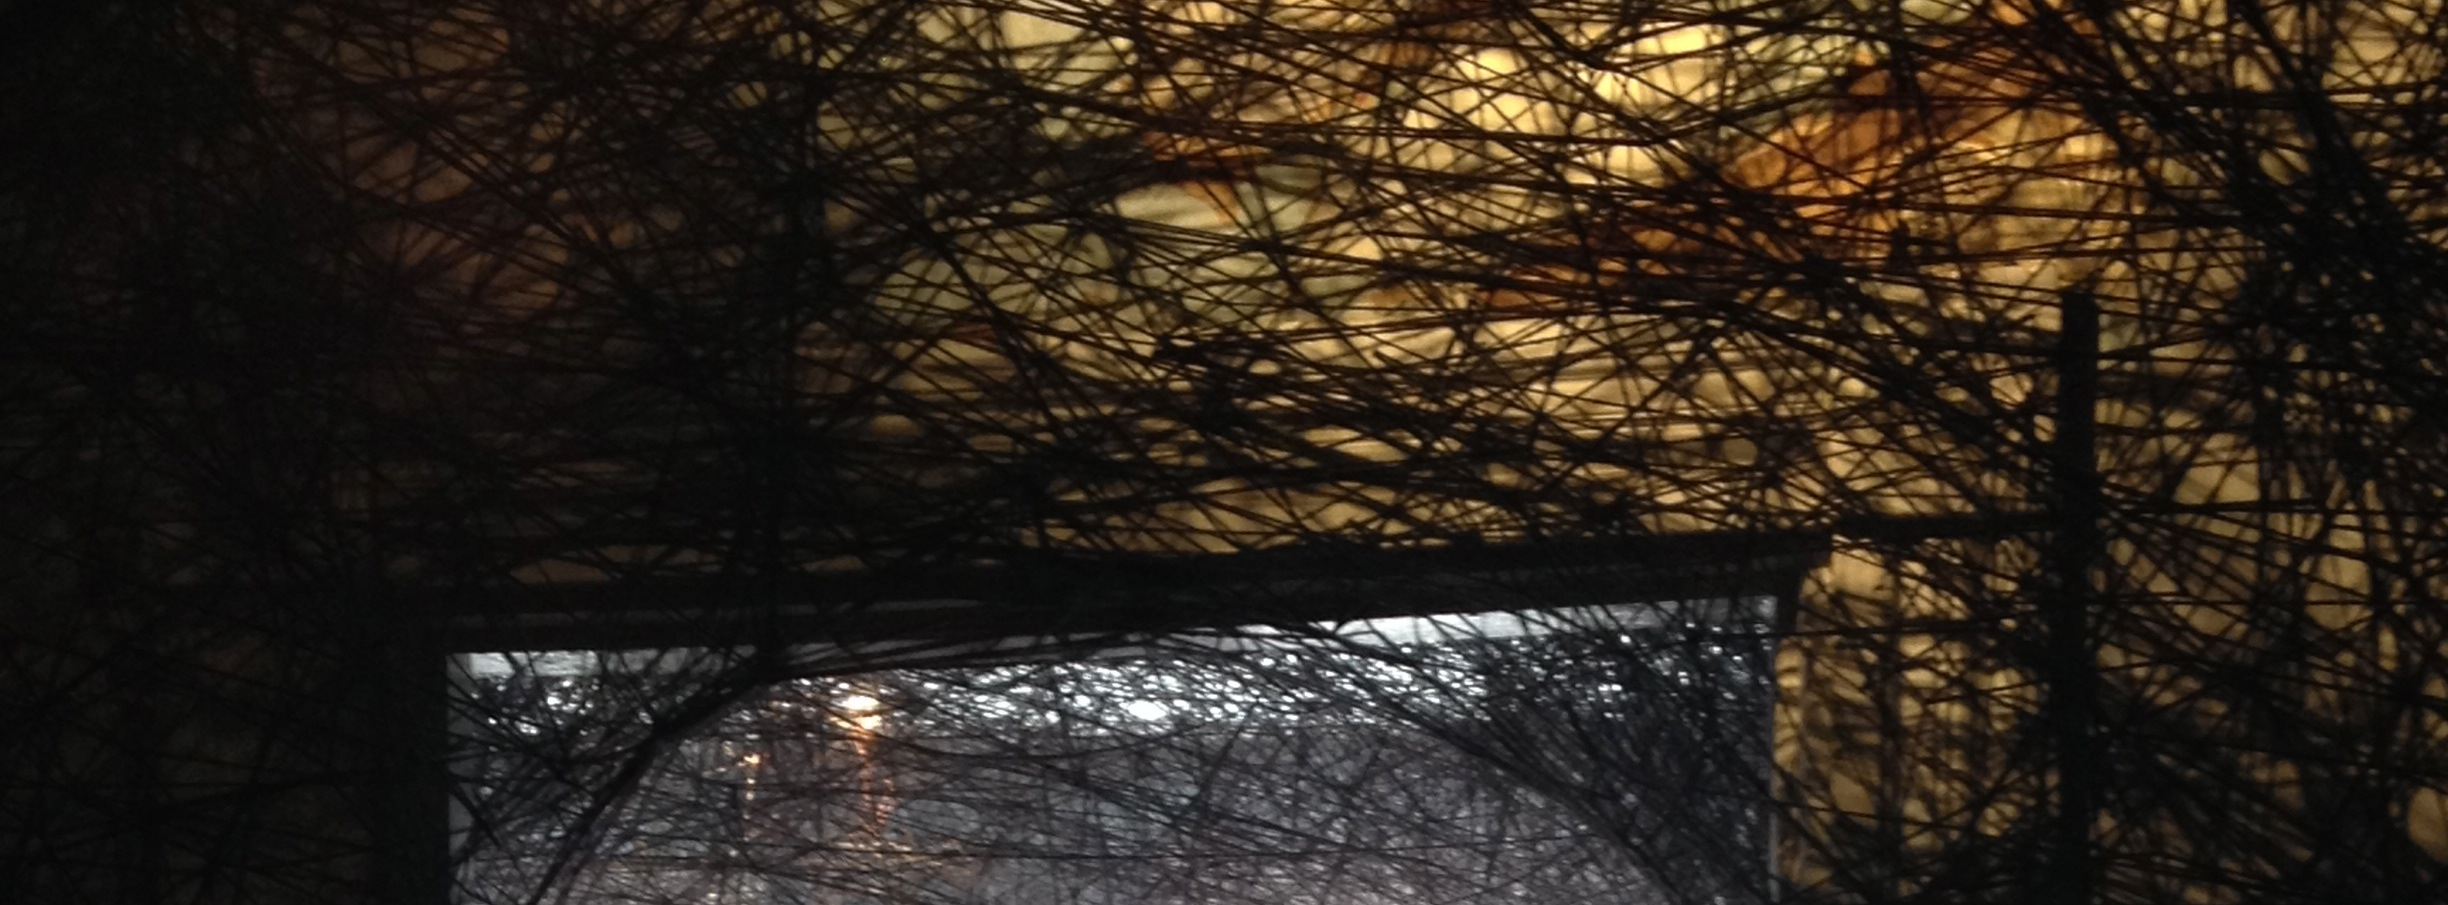 Detail from  Trace of Memory  by Chiharu Shiota.